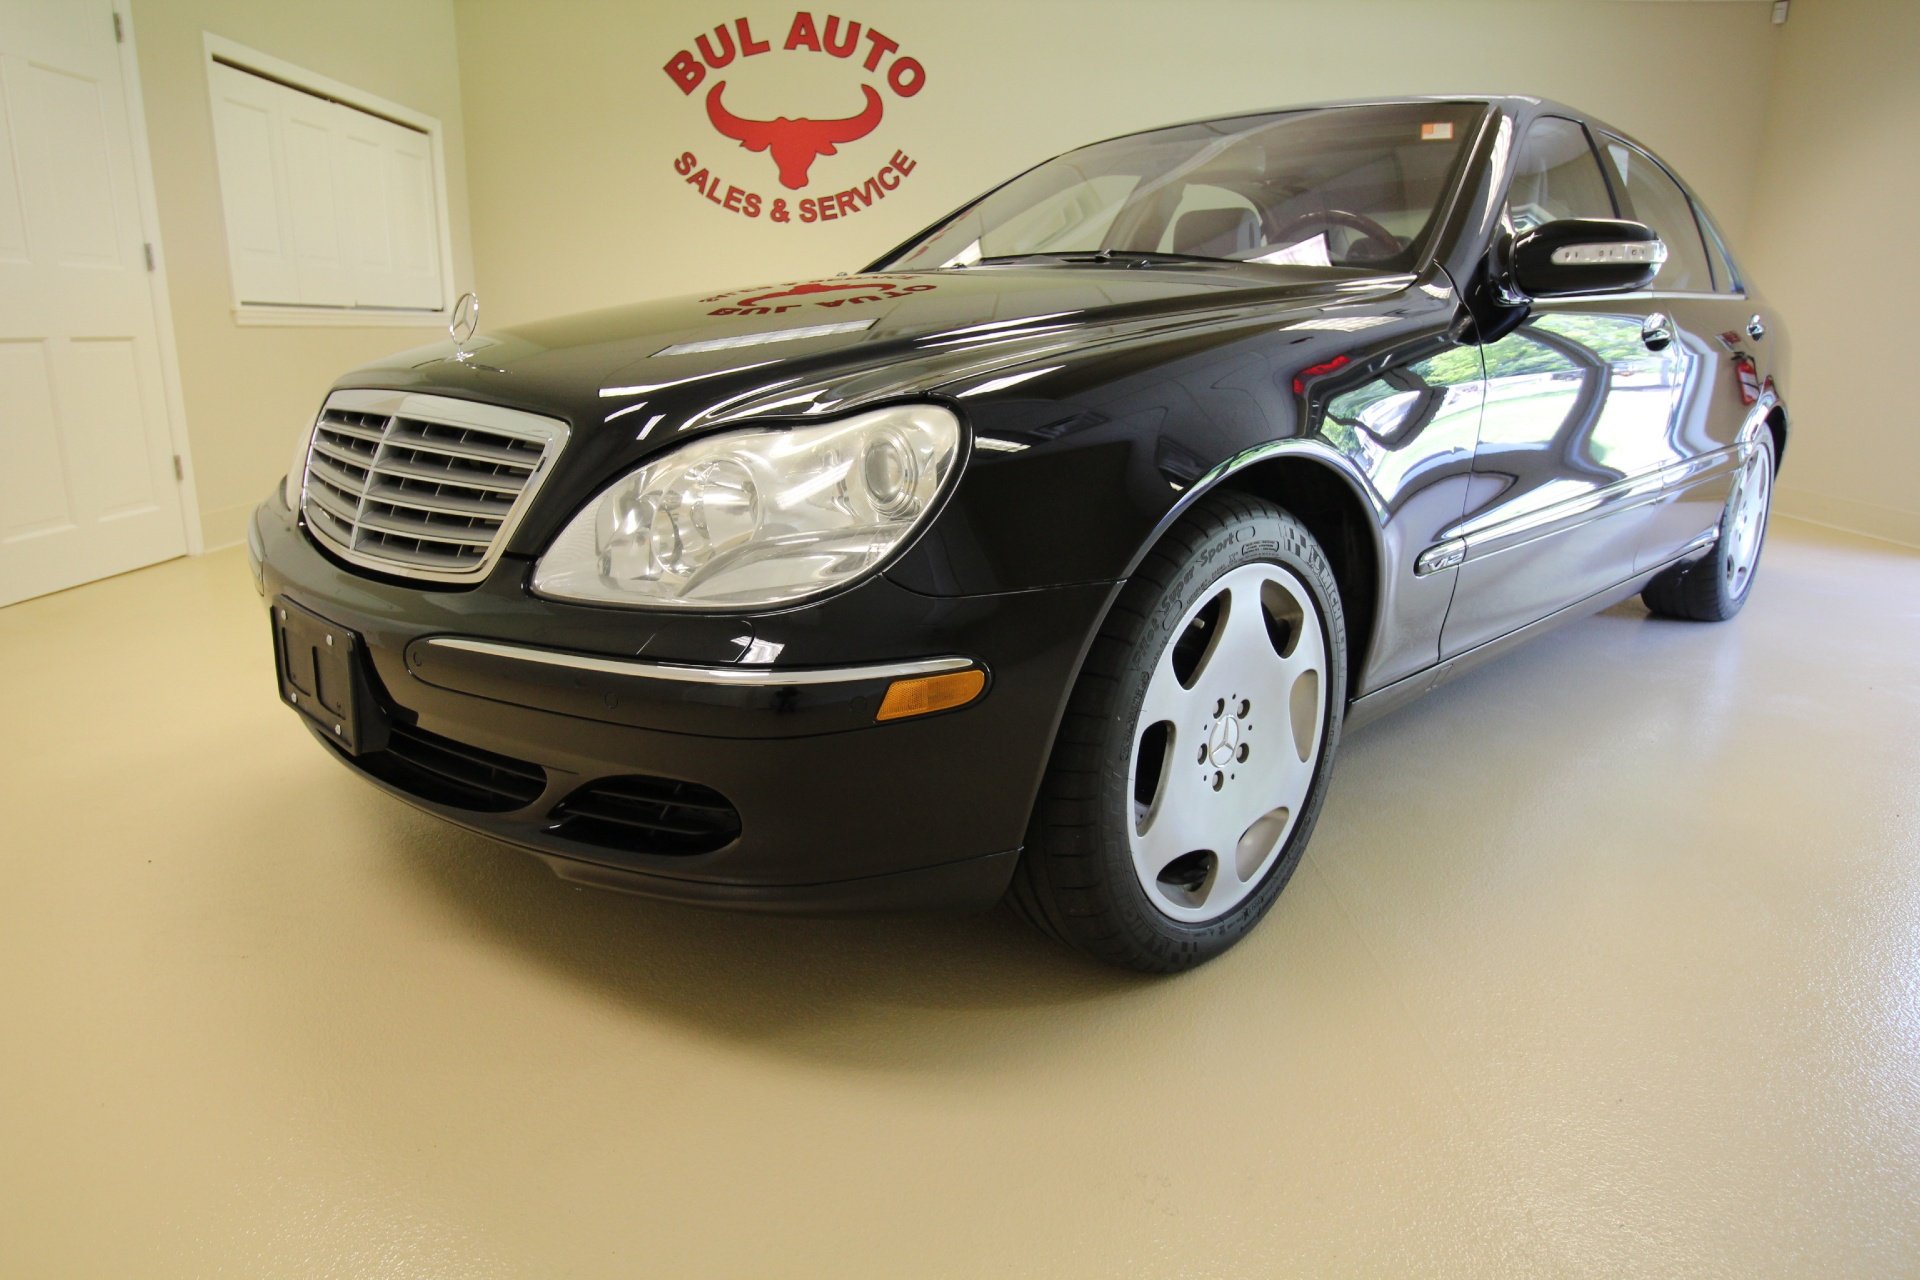 2004 mercedes benz s class s600 superb condition low miles for 2004 mercedes benz s600